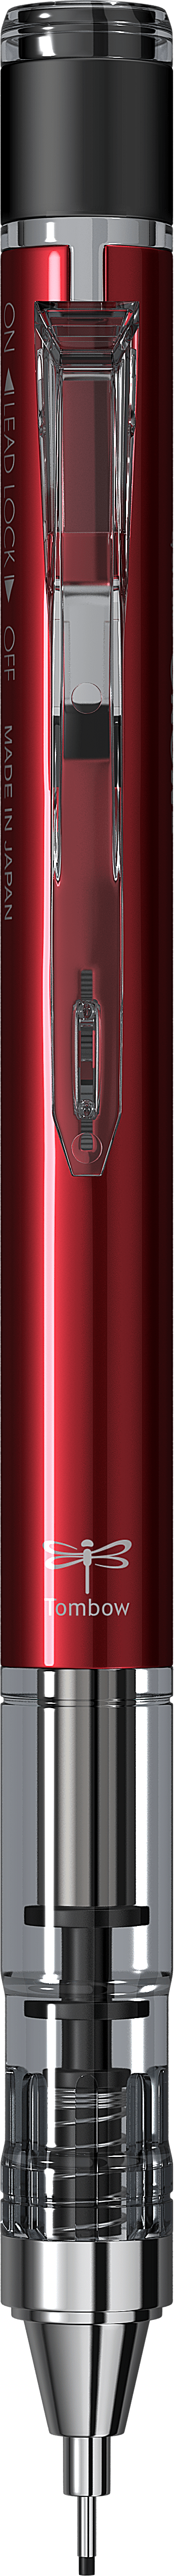 Red Creion mecanic 0.5 mm - Tombow 1